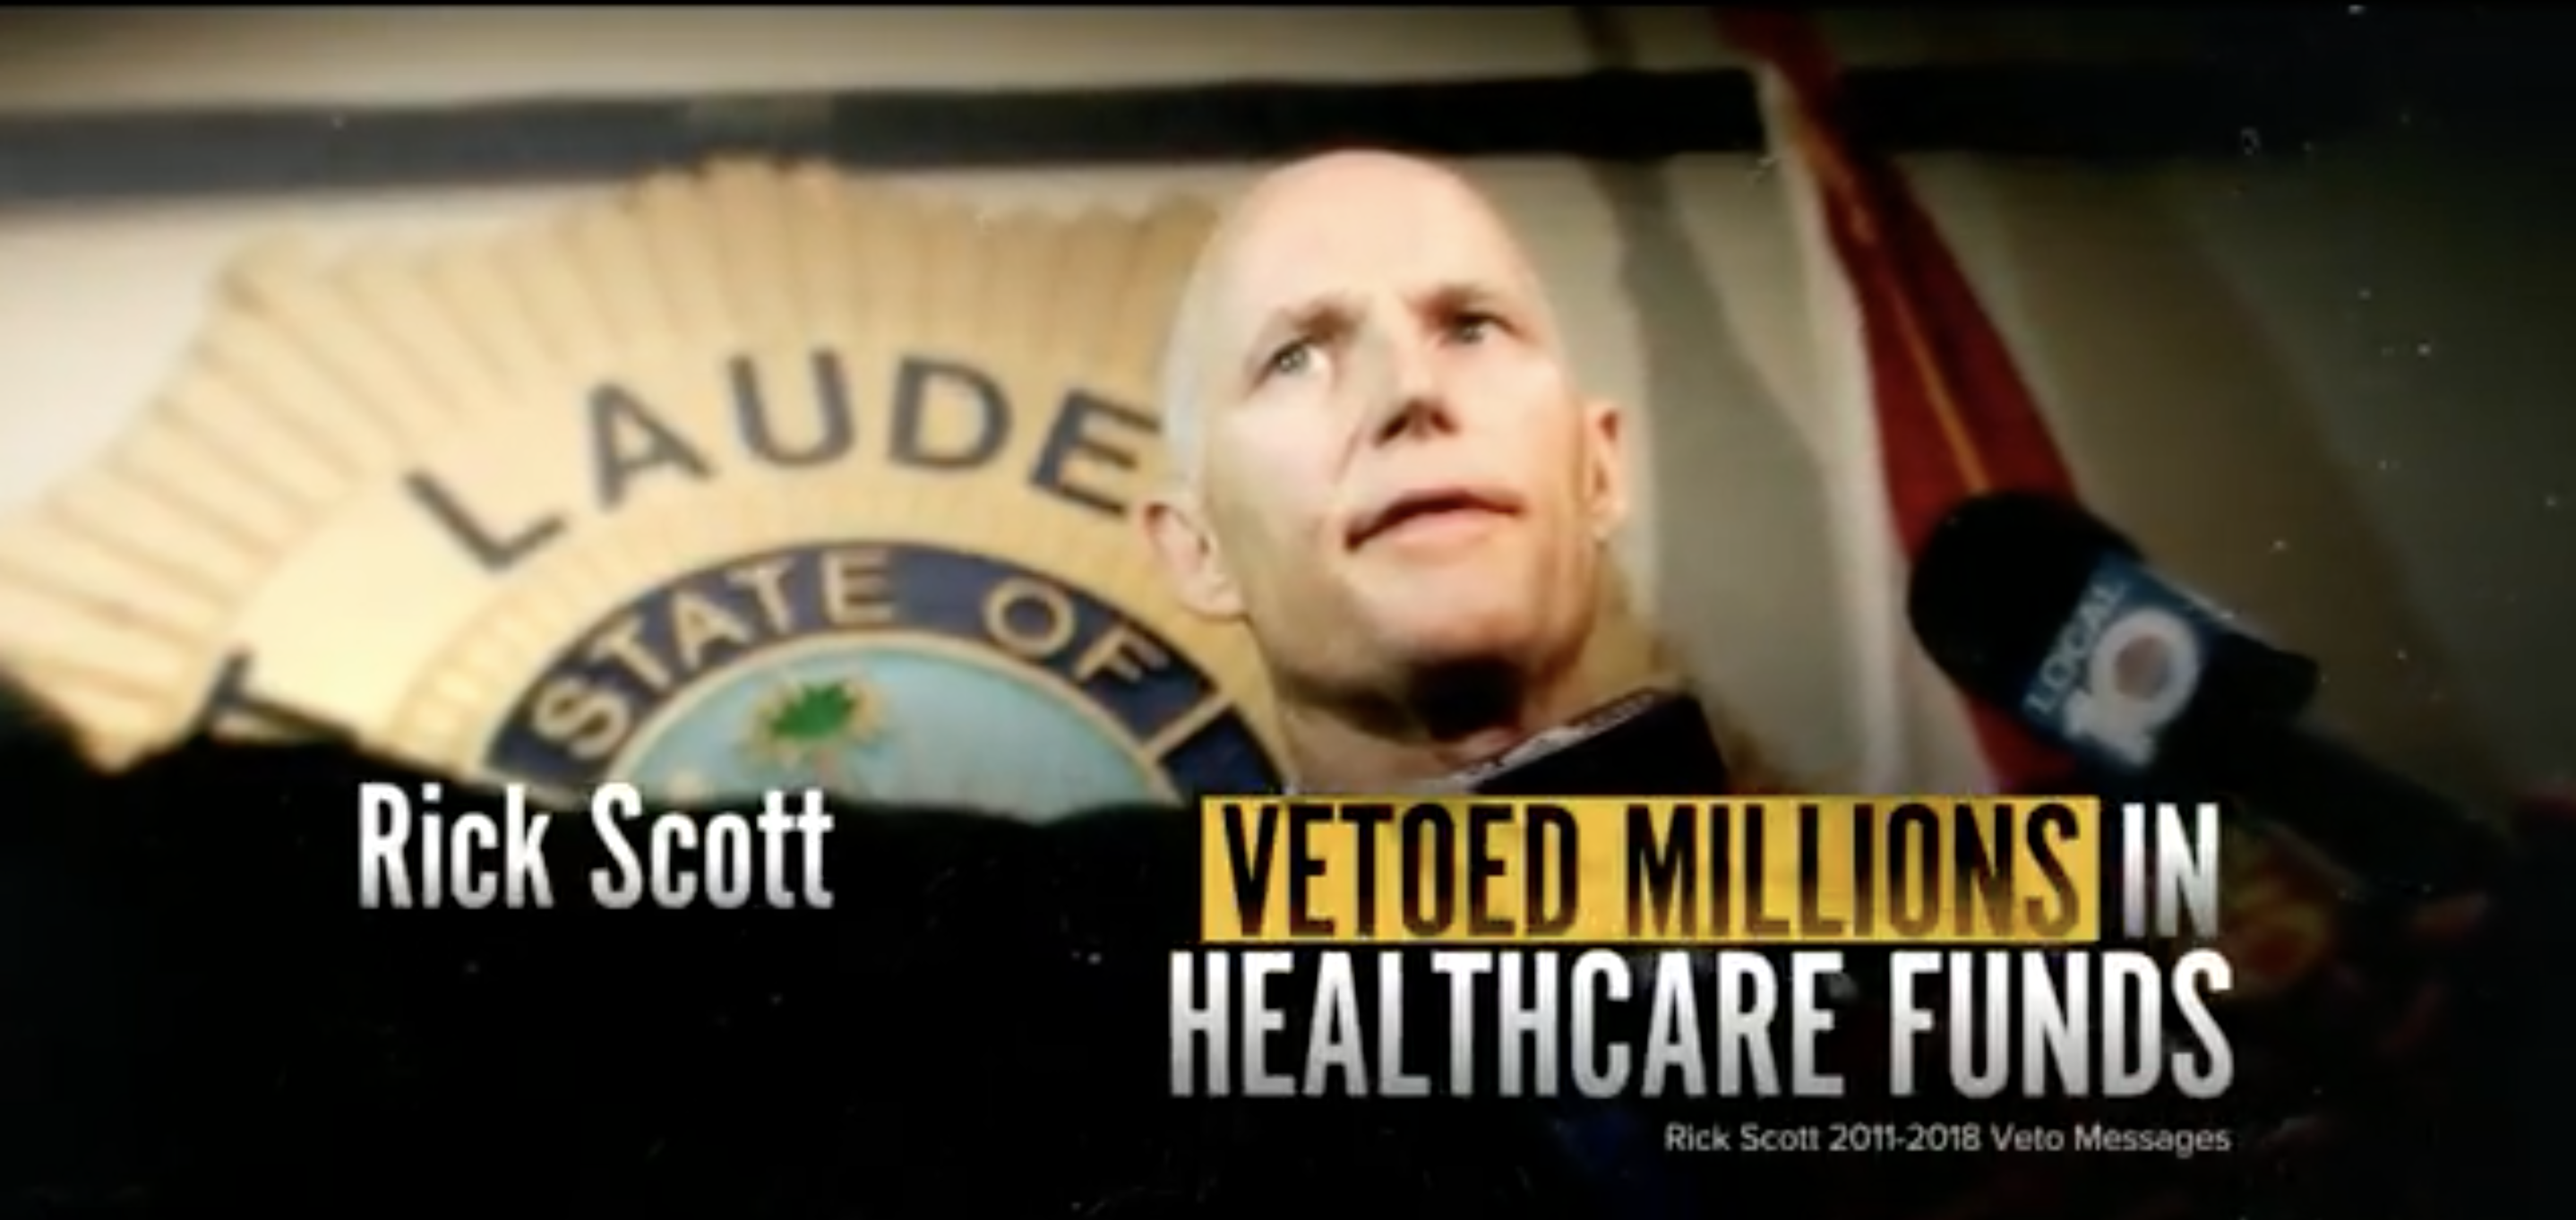 Scott's Healthcare Record Slammed in new Advertisement